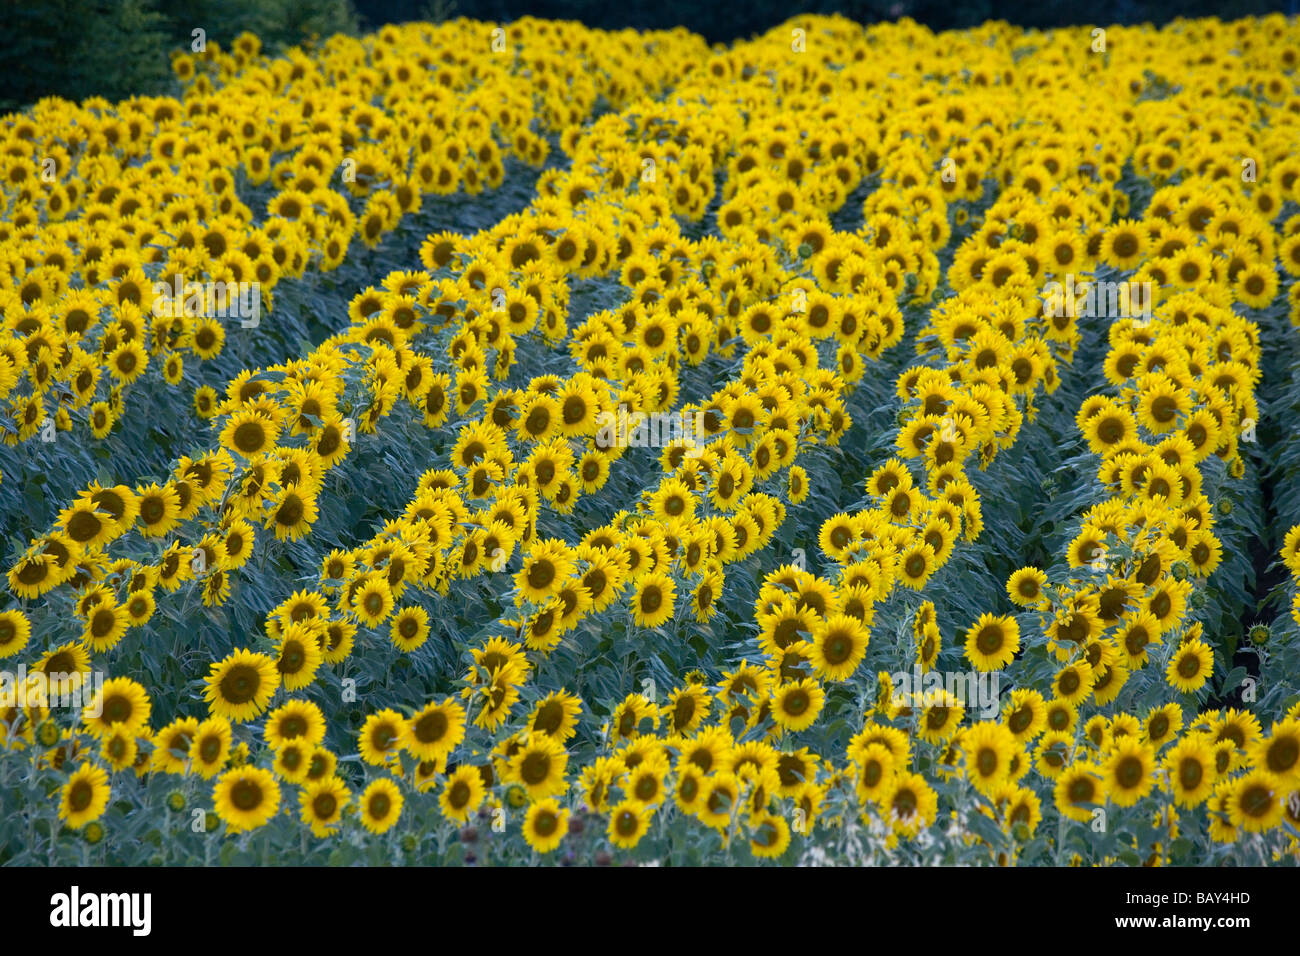 Blooming sunflower field, Alpes-de-Haute-Provence, Provence, France - Stock Image